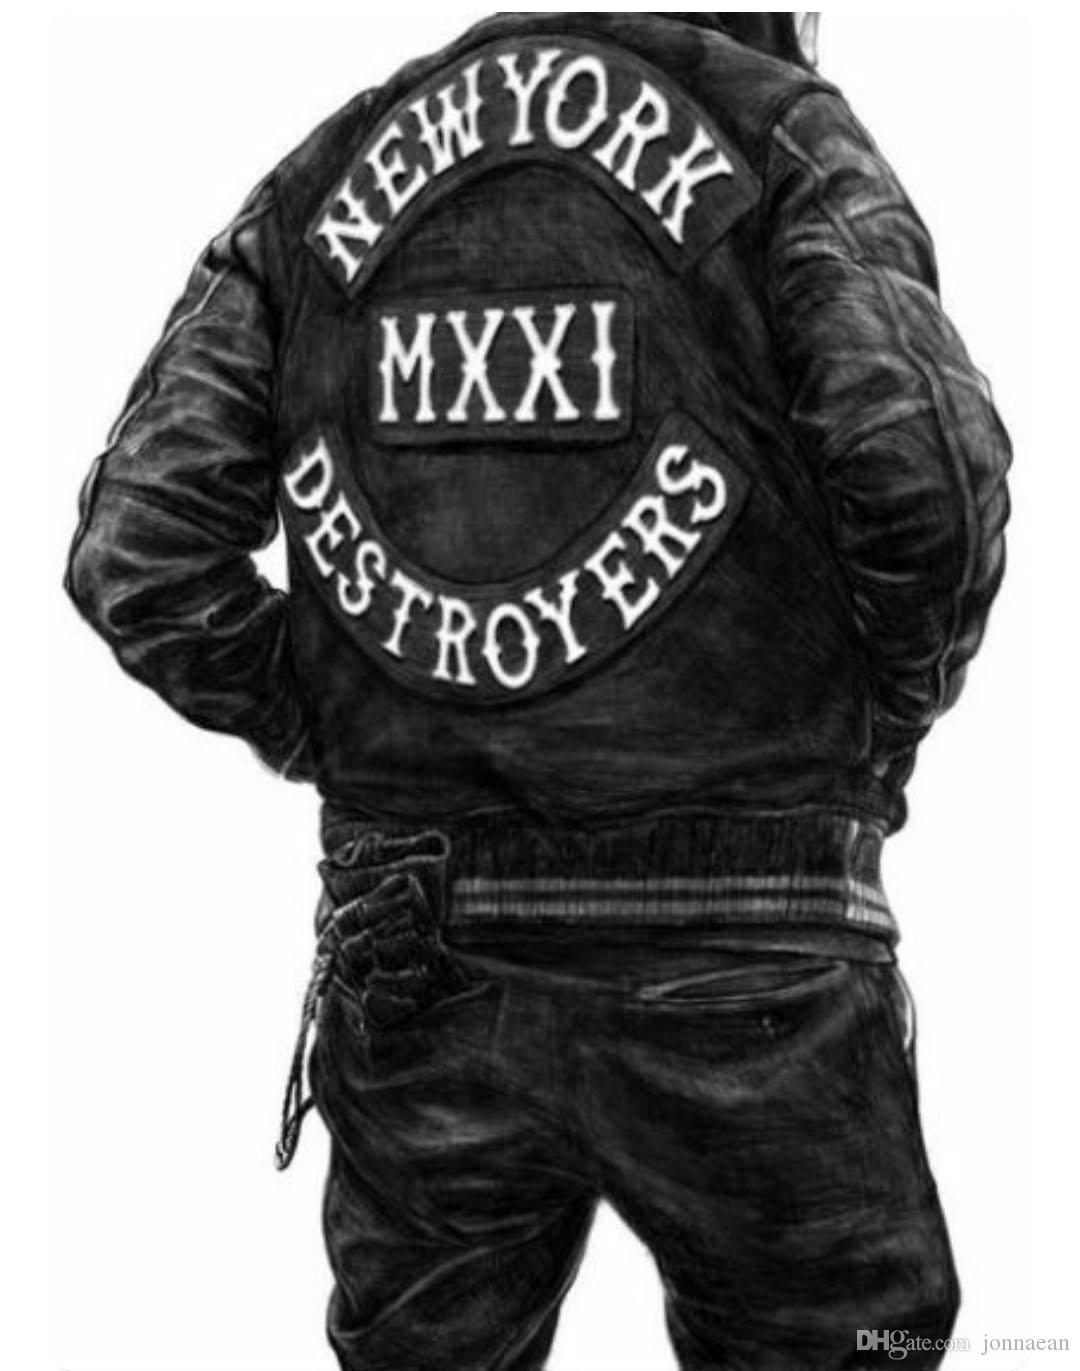 NEW ARRIVAL COOLEST NEW YORK MXXI DESTROYERS LARGE BACK EMBROIDERY PATCH MOTORCYCLE CLUB VEST OUTLAW BIKER MC COLORS PATCH